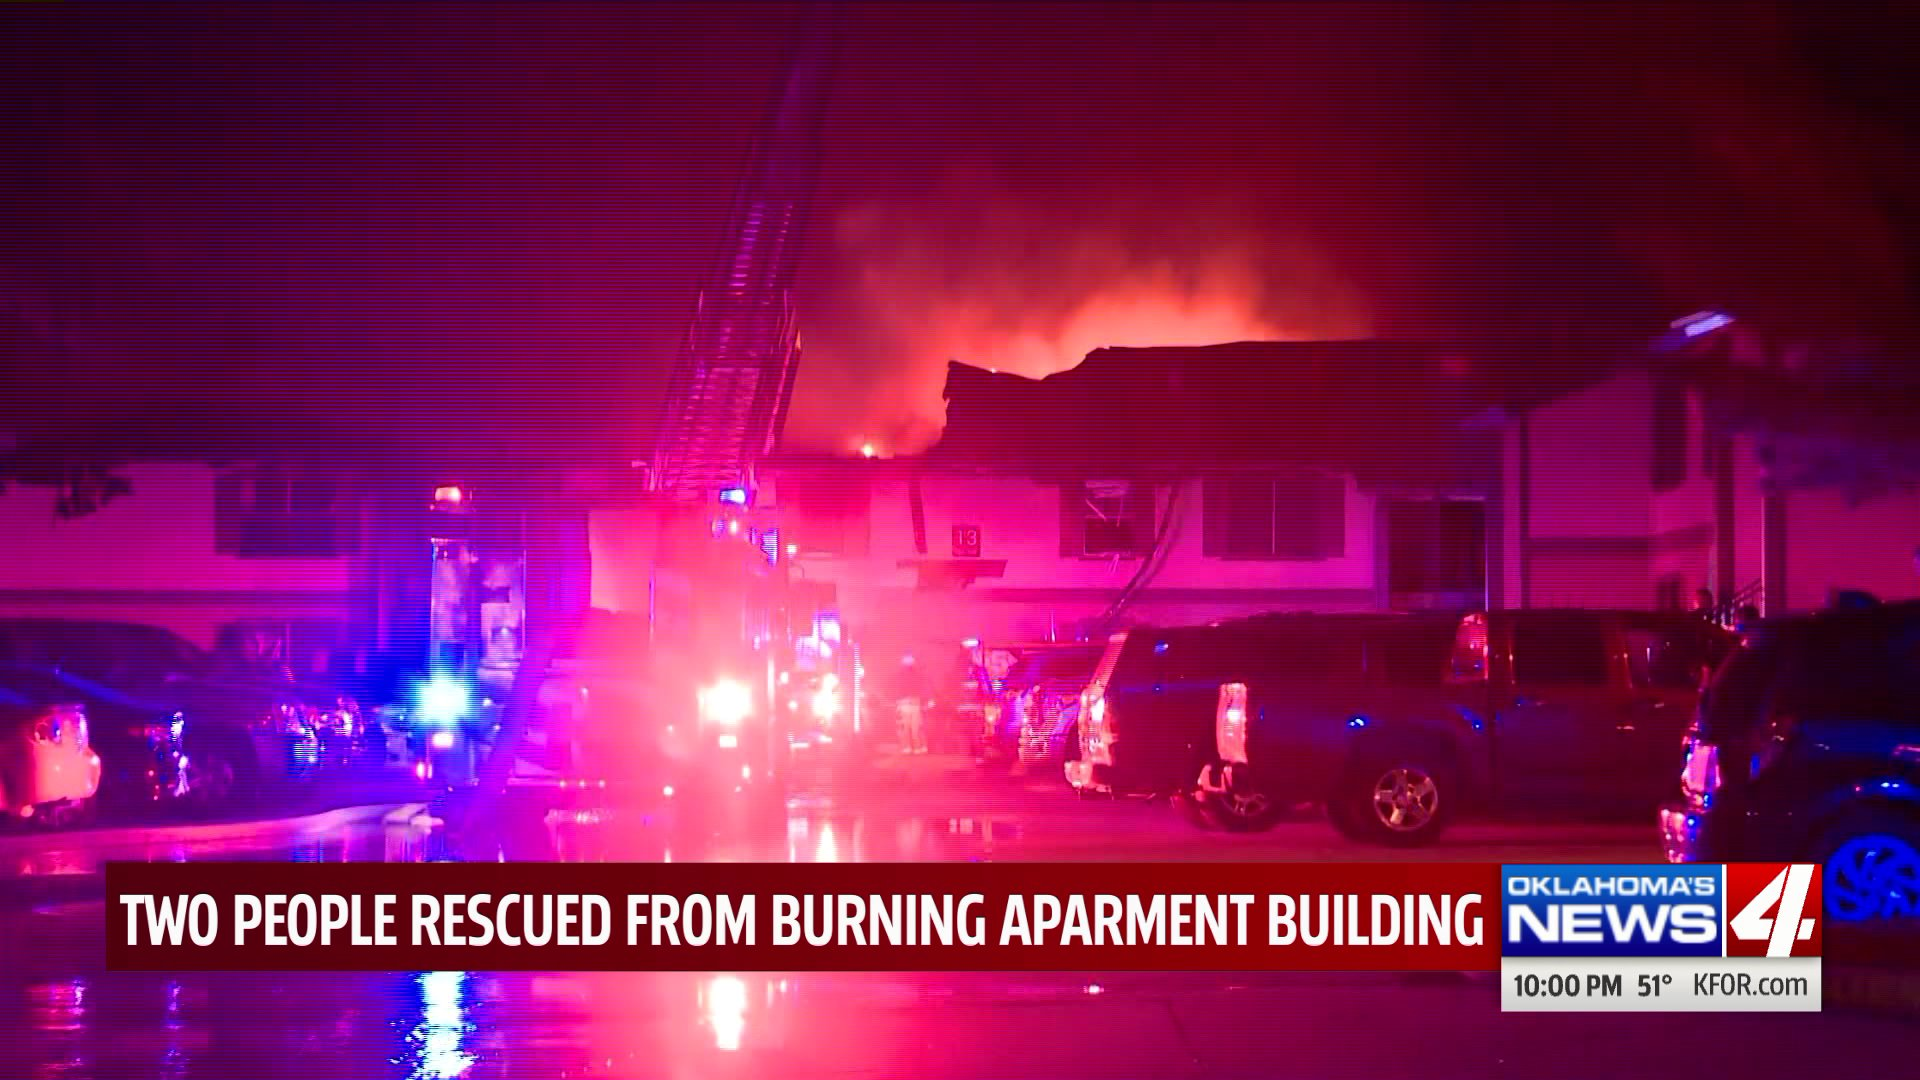 Two people rescued from apartment fire